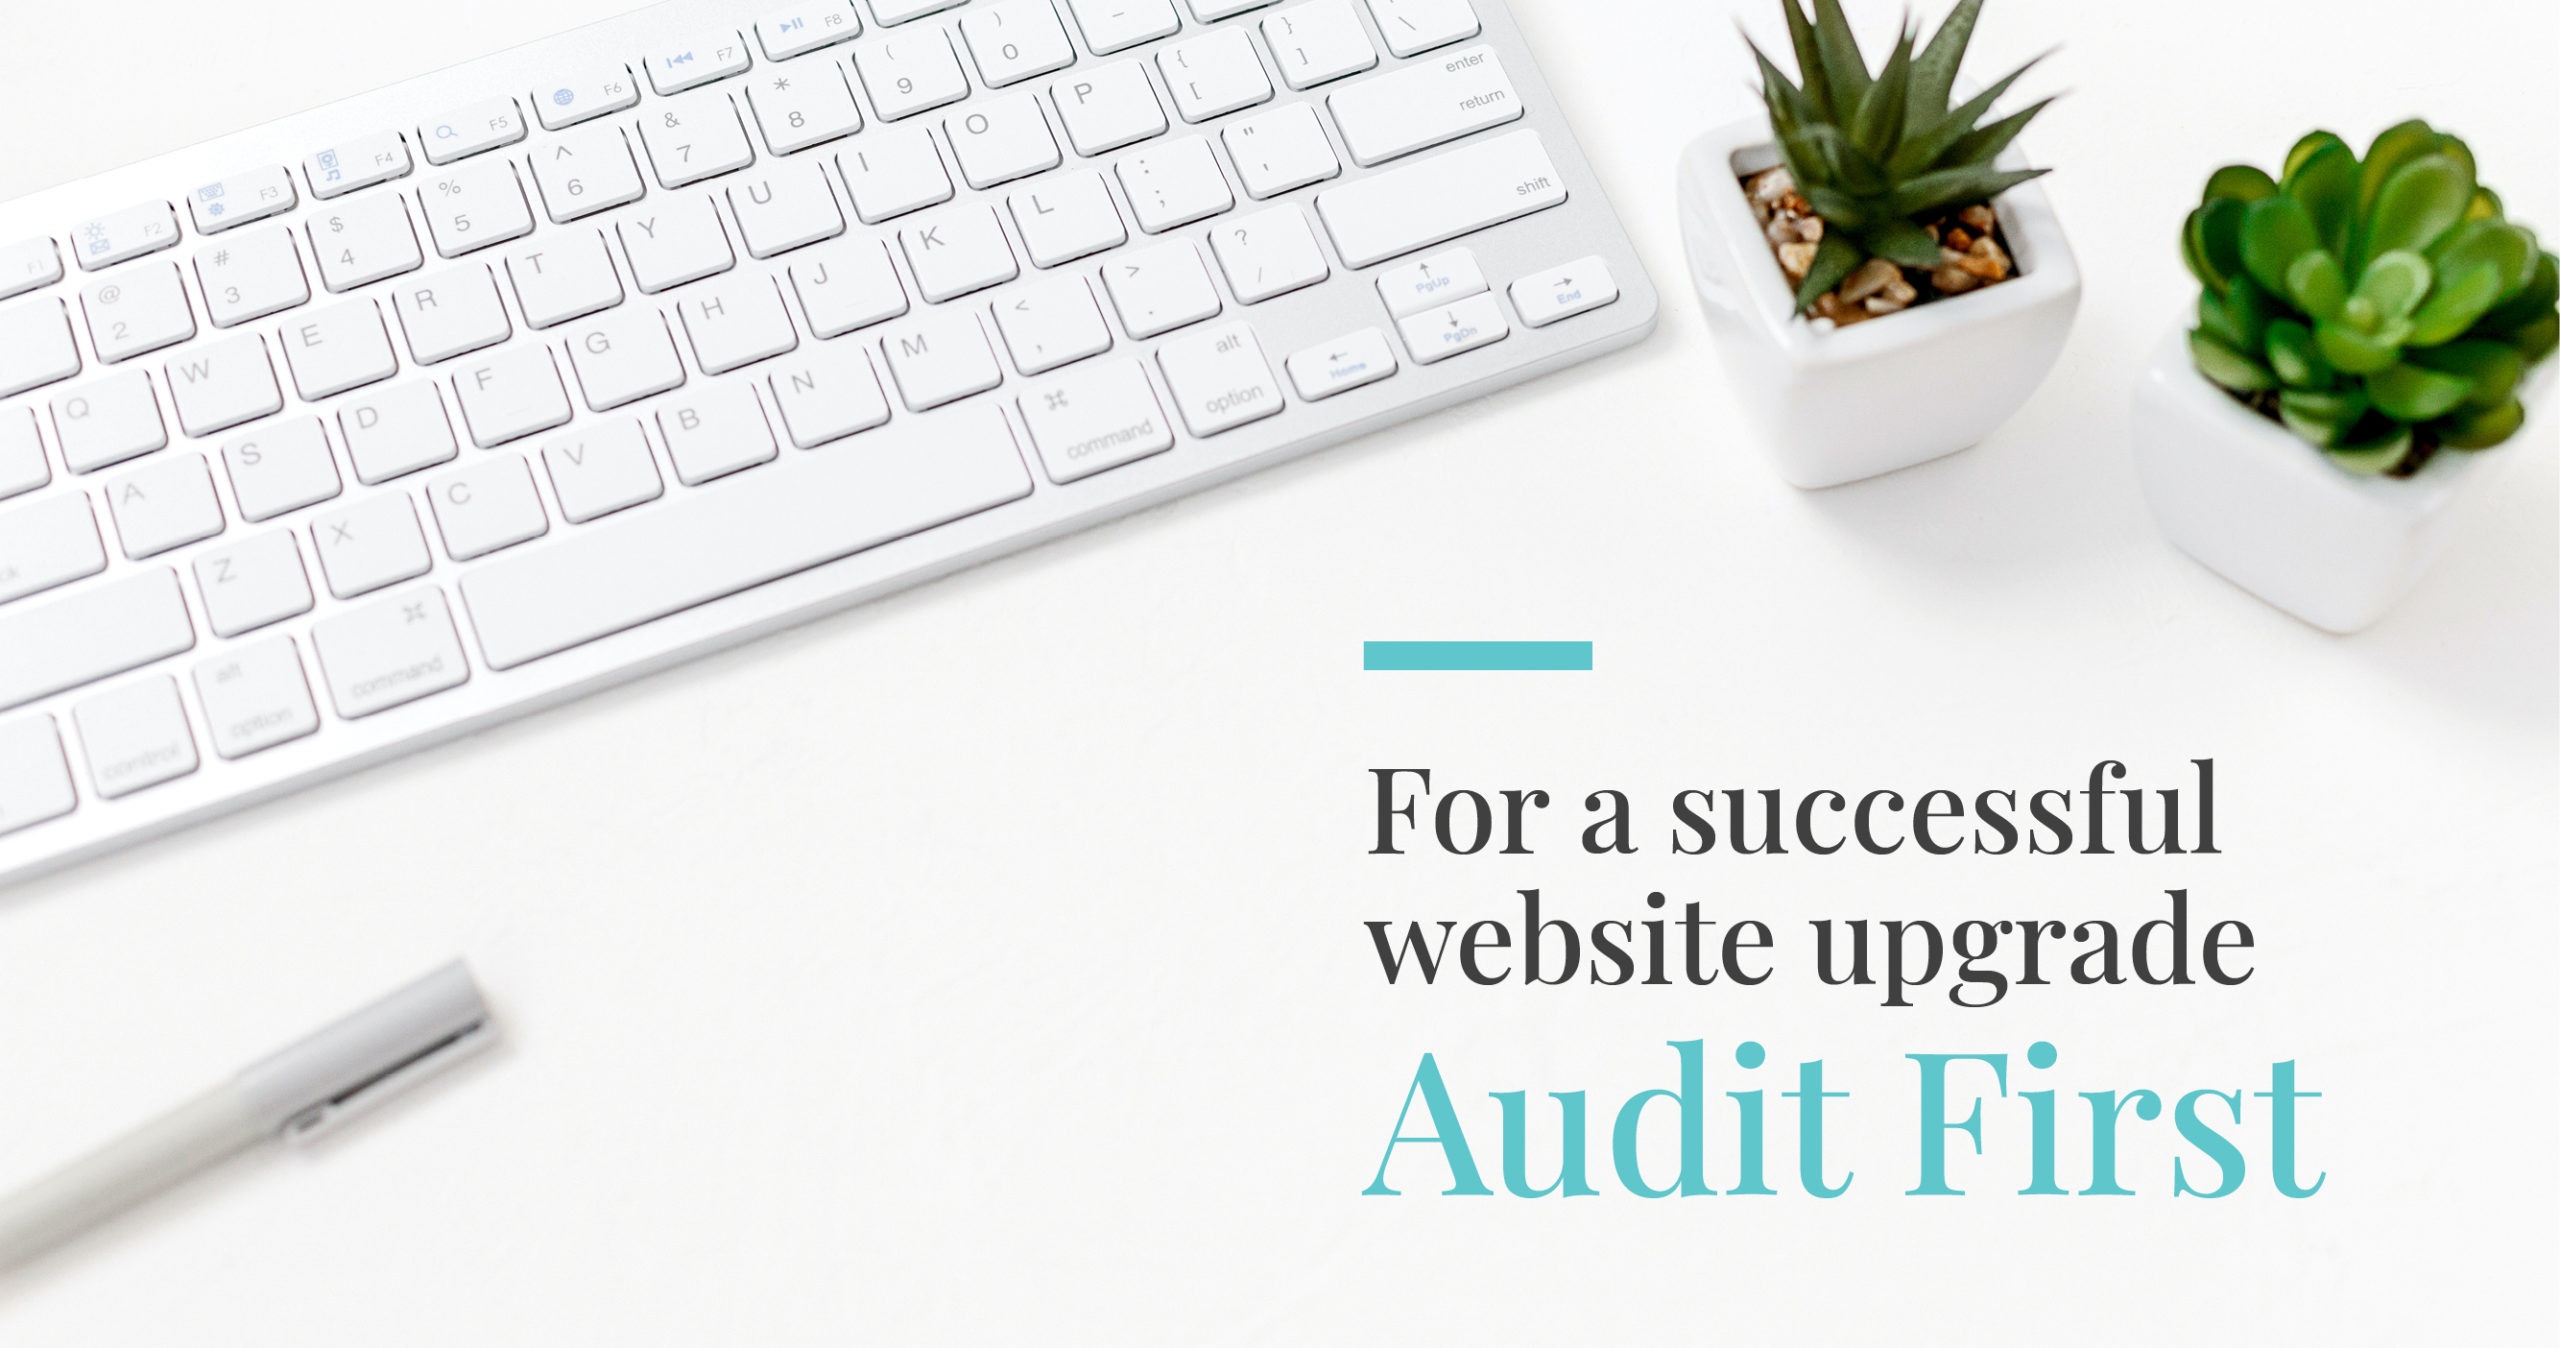 website audit for successful website title over desk with keyboard and plants